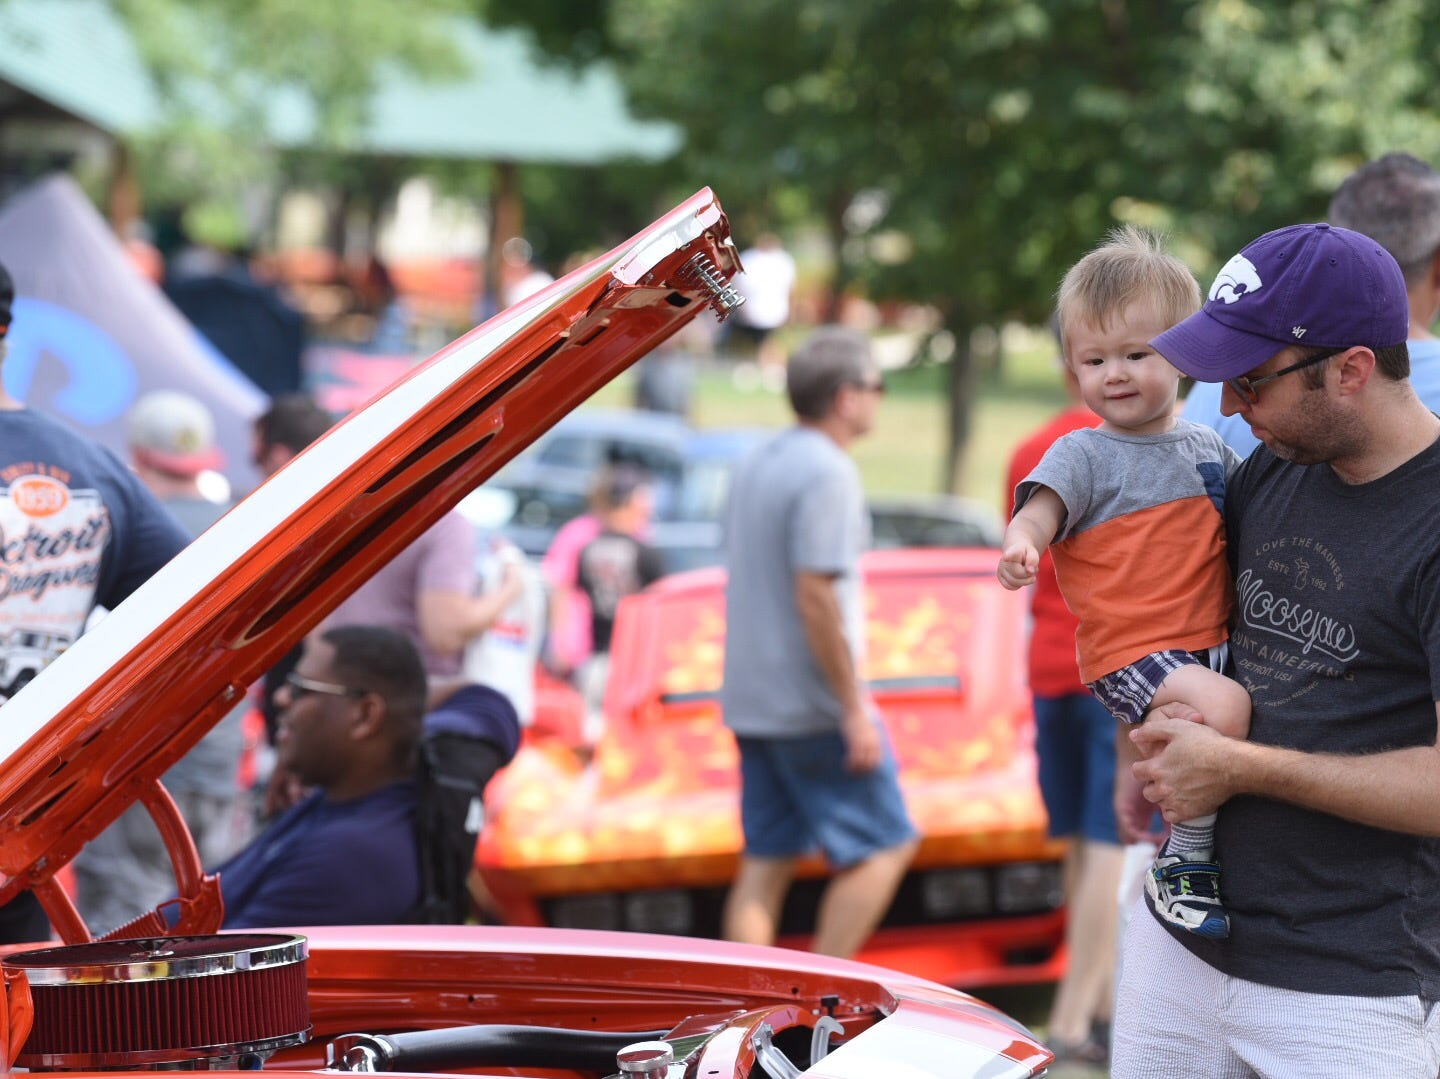 John Roberts of Bloomfield carries his son Evan as they look at tricked out cars at Memorial Park in Royal Oak for the Woodward Dream Cruise.